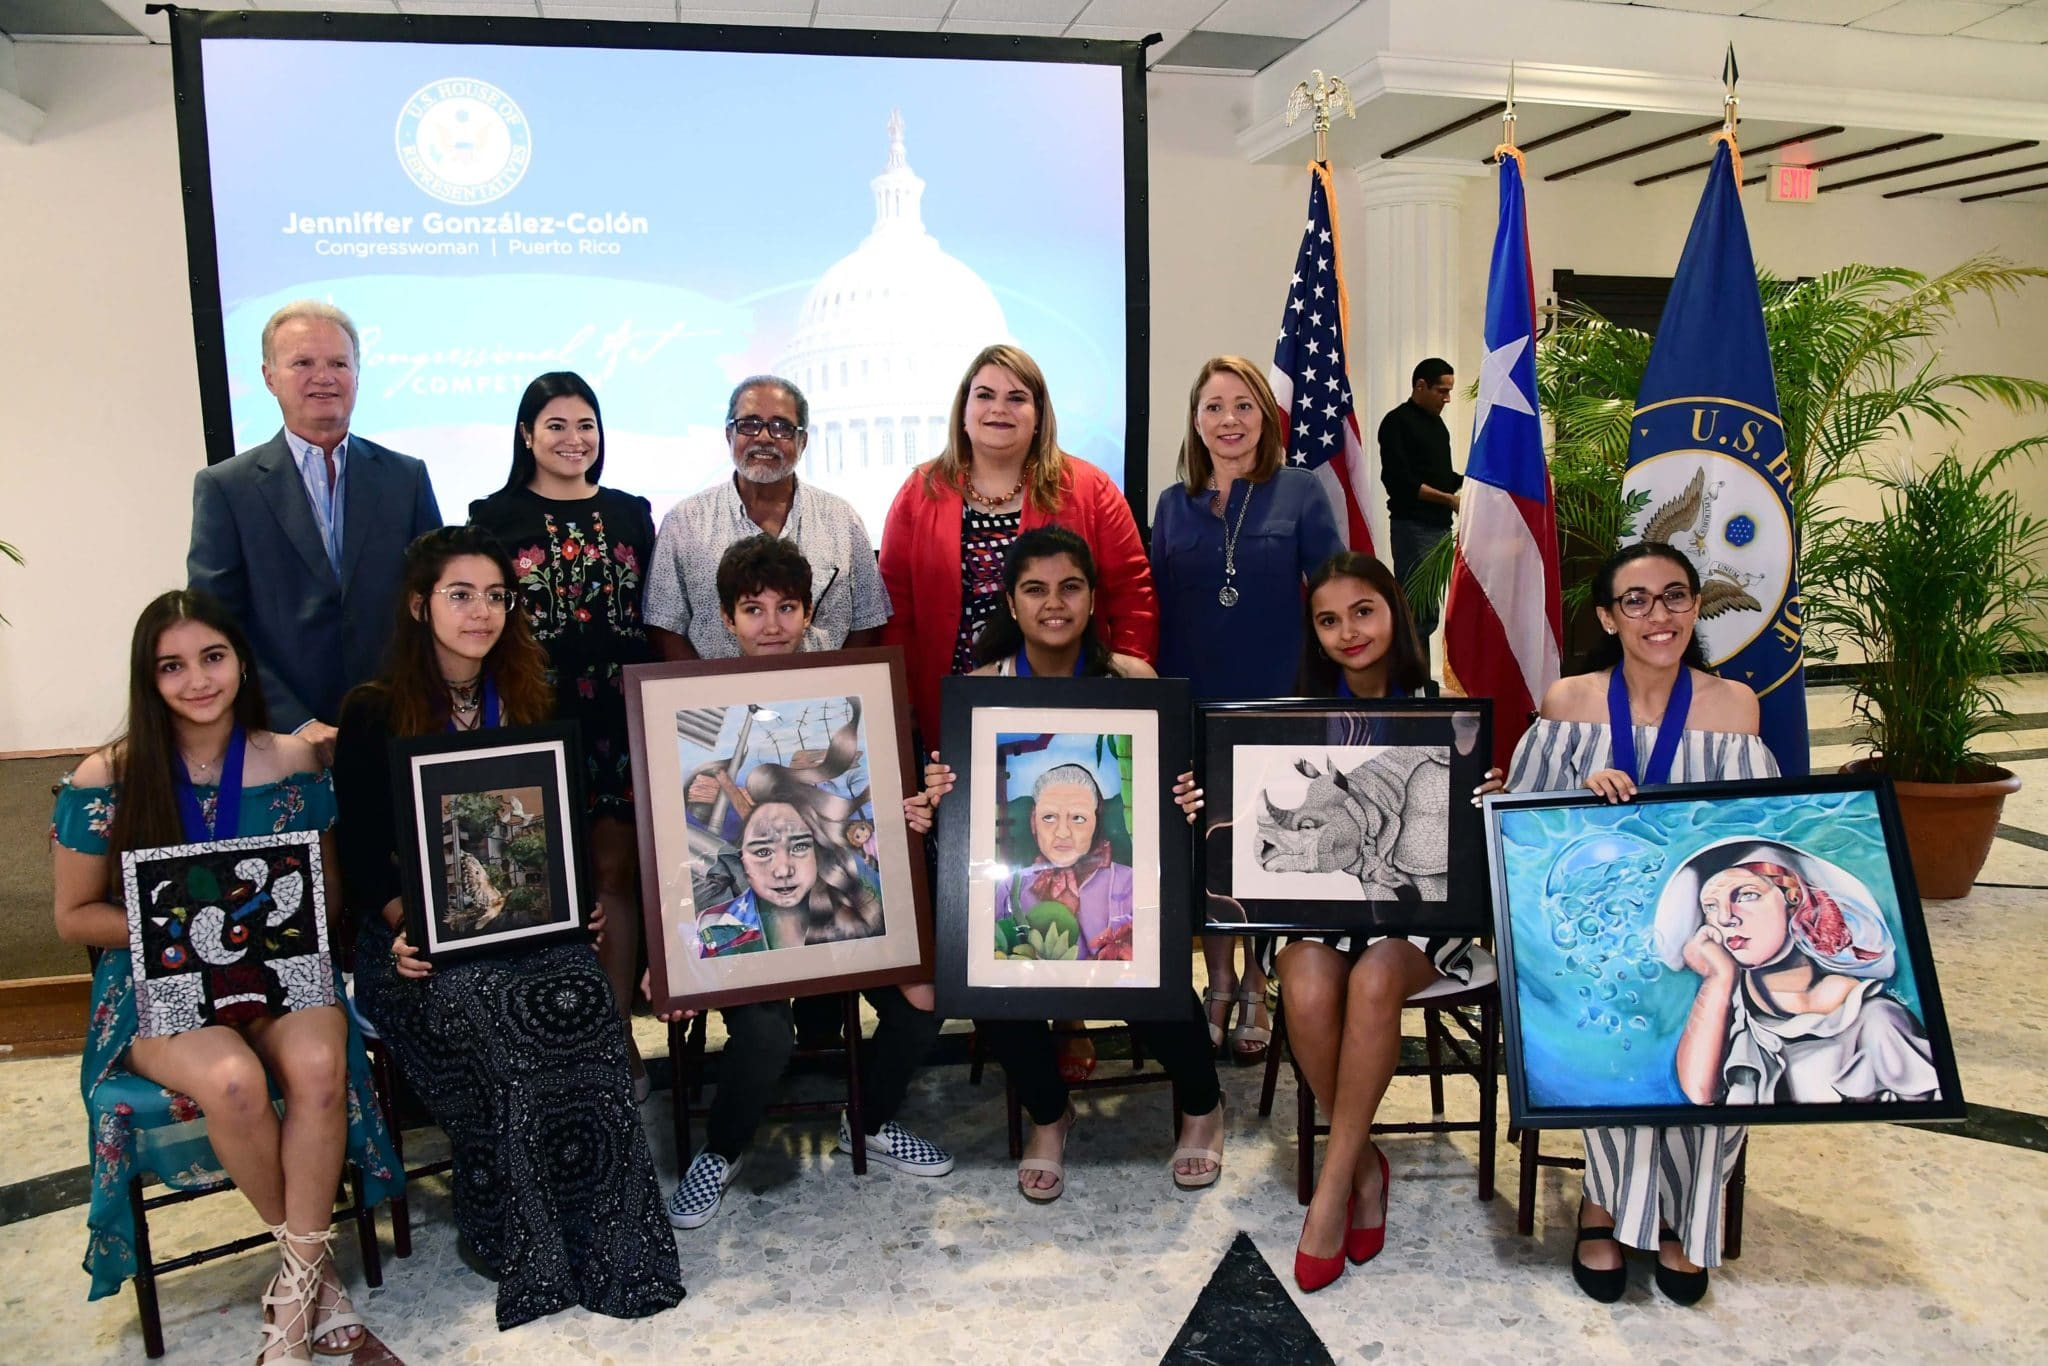 2018 Winners in Puerto Rico of the Congressional Art Competition. Photo credit: Office of Resident Commissioner Jenniffer González-Colón